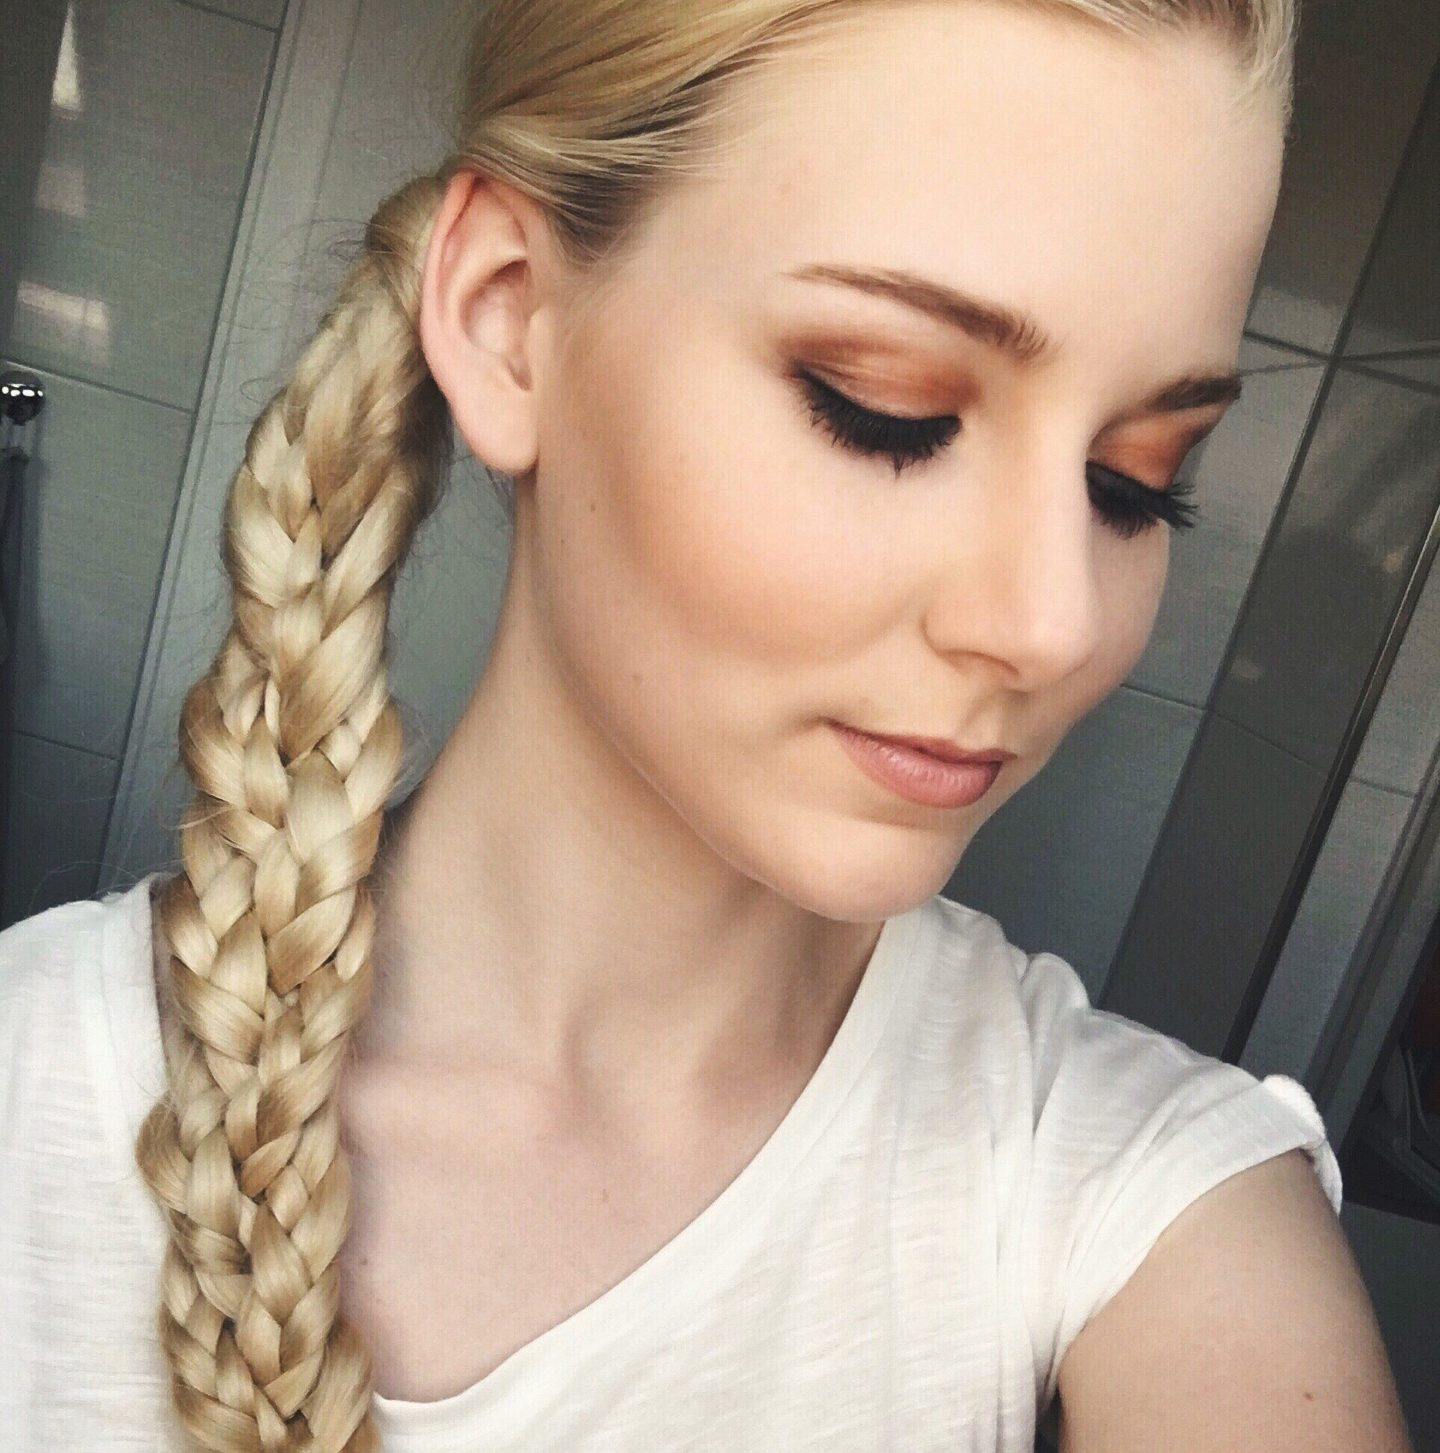 SIMPLE SPRING BRAID IN 5 MINUTES 🌸